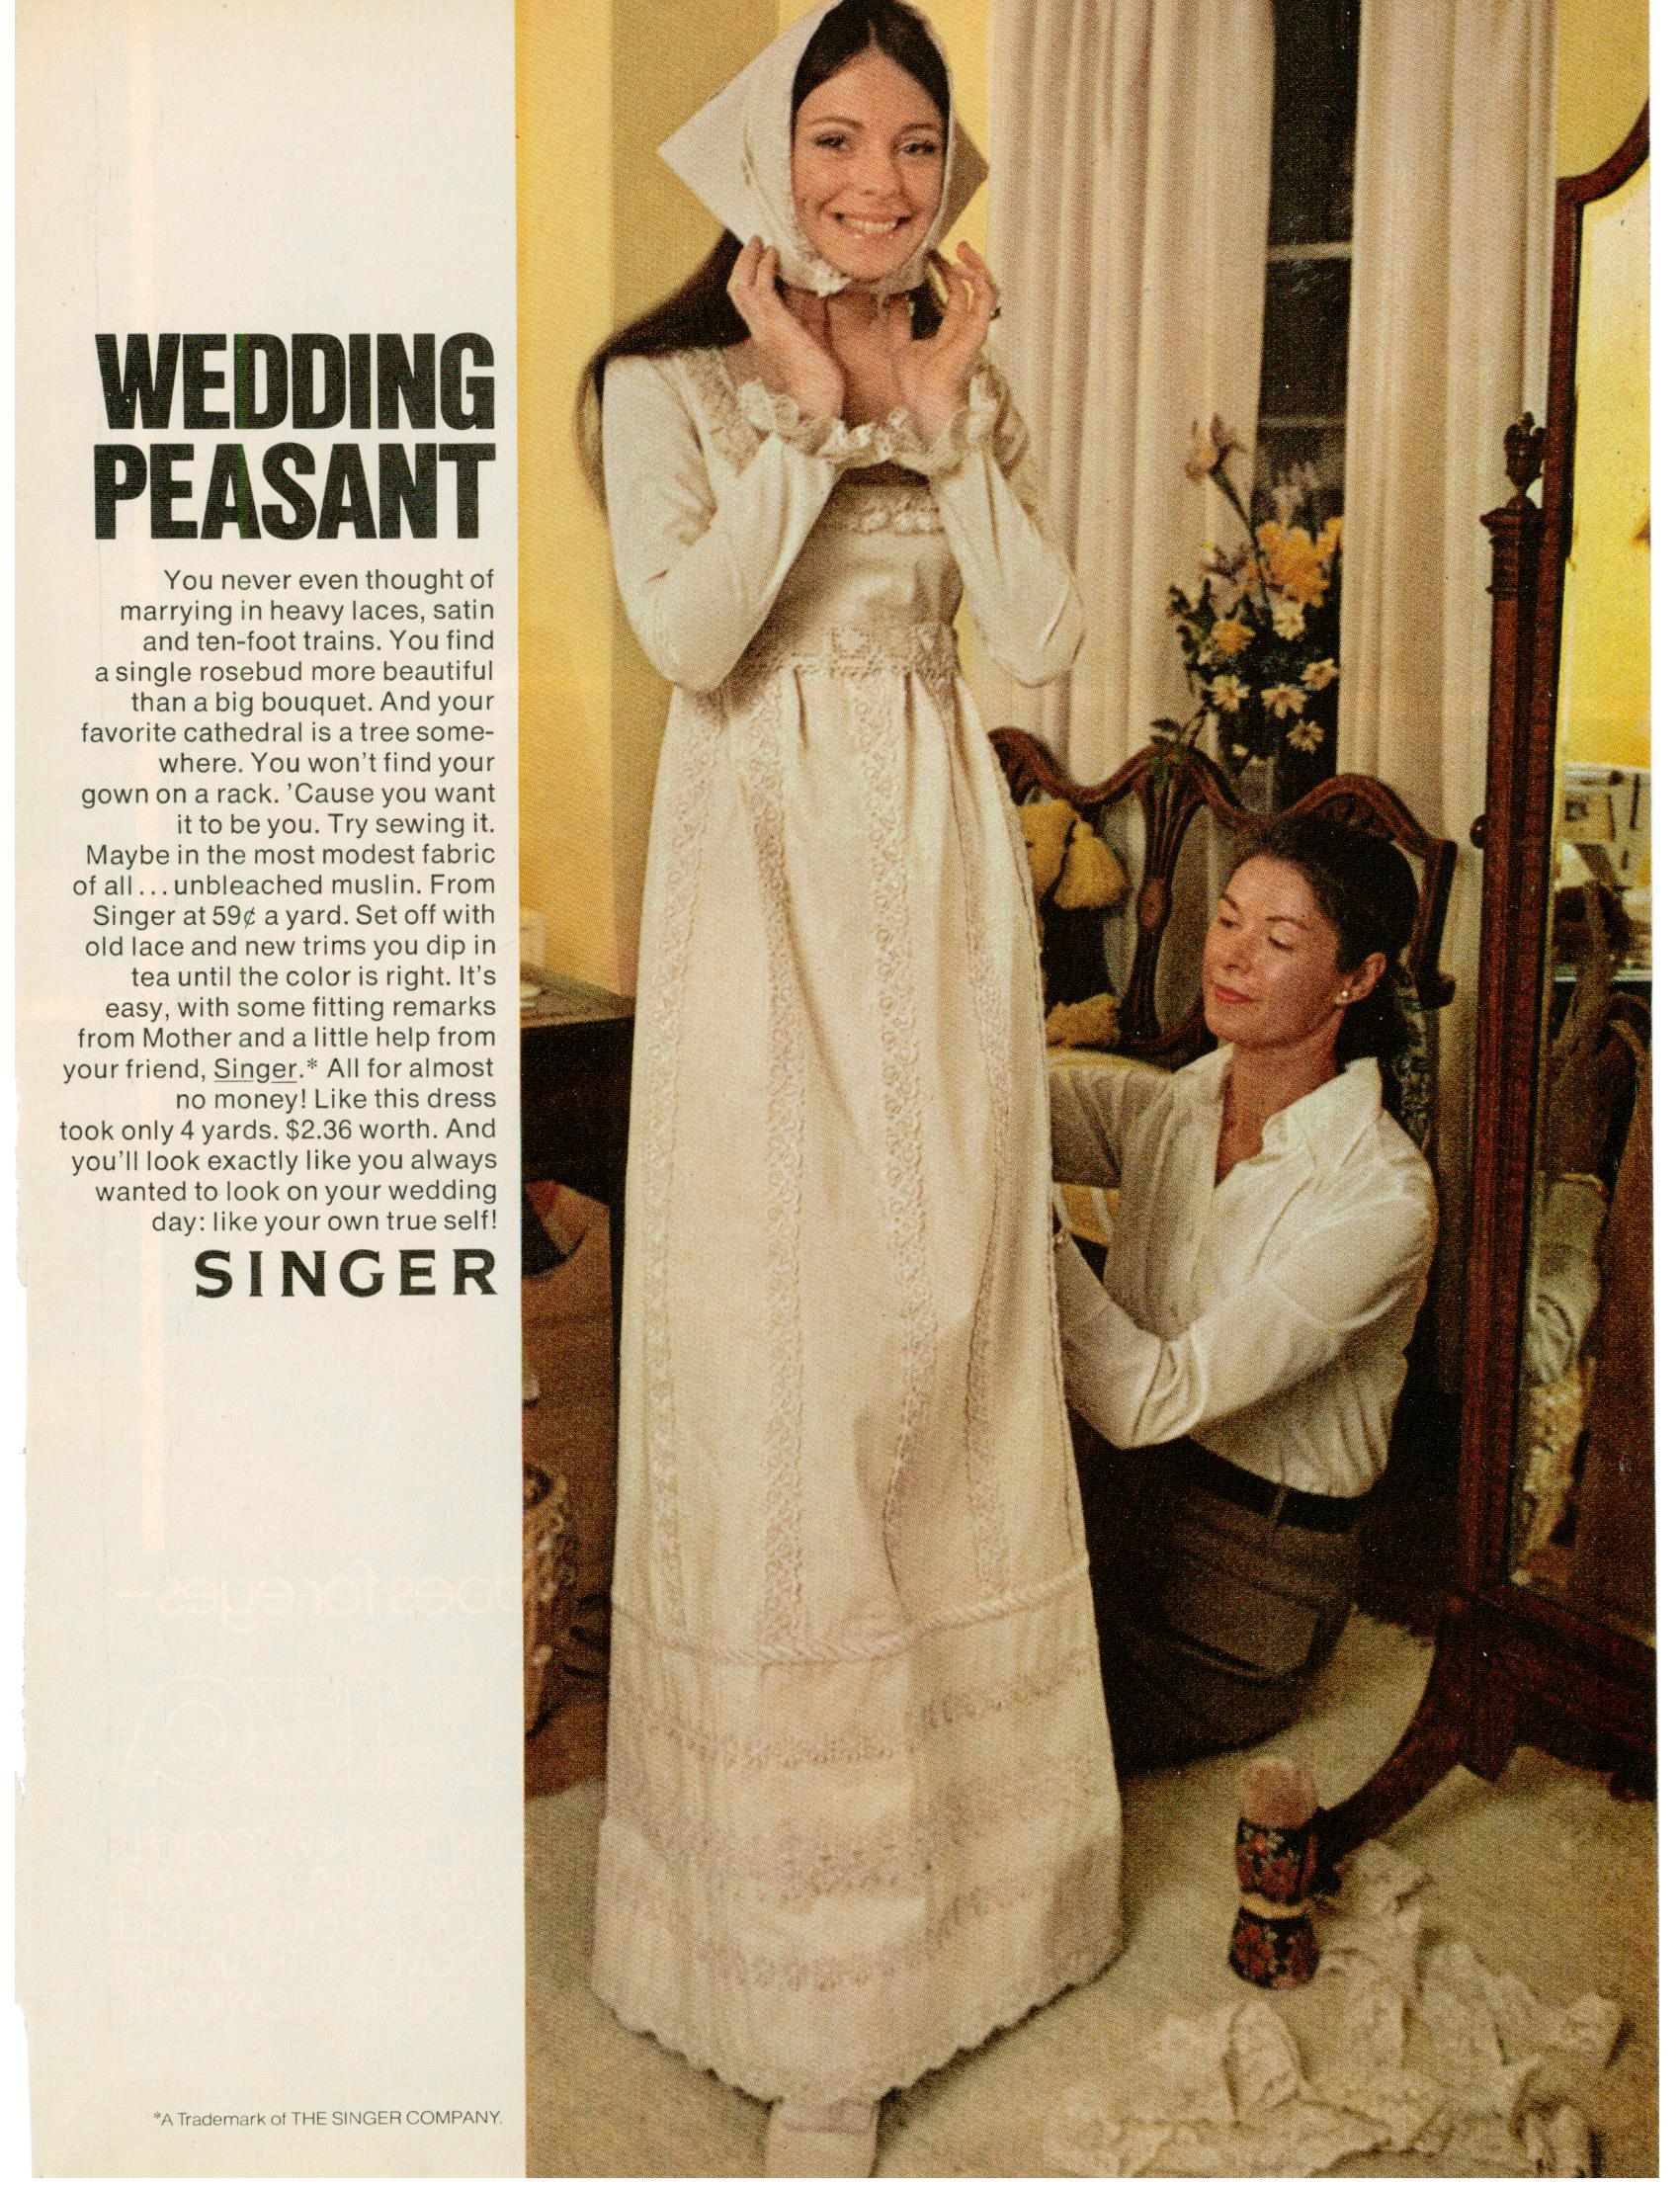 Wedding Singer Wedding Dress Singer Sewing Wedding Dress ad